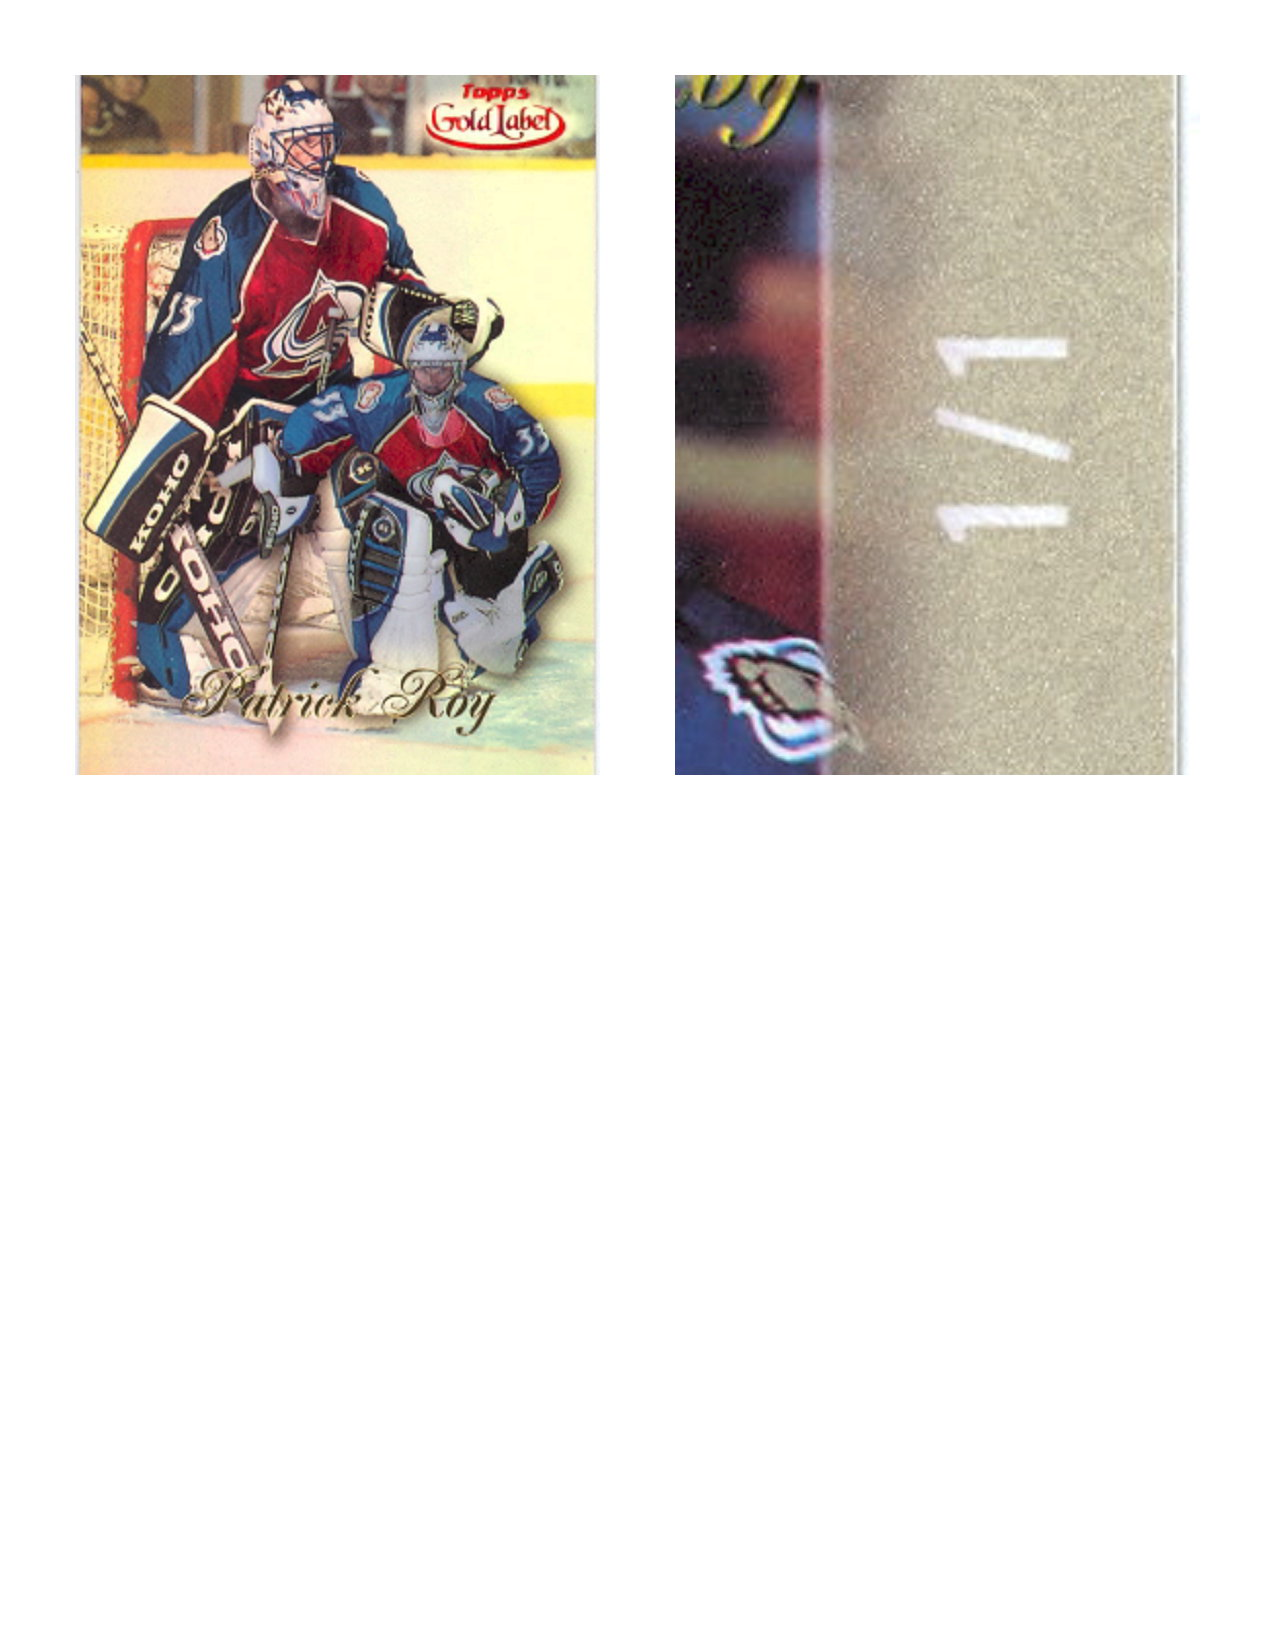 1998-99 Topps Gold Label Class 1 Red One of One #77 Patrick Roy